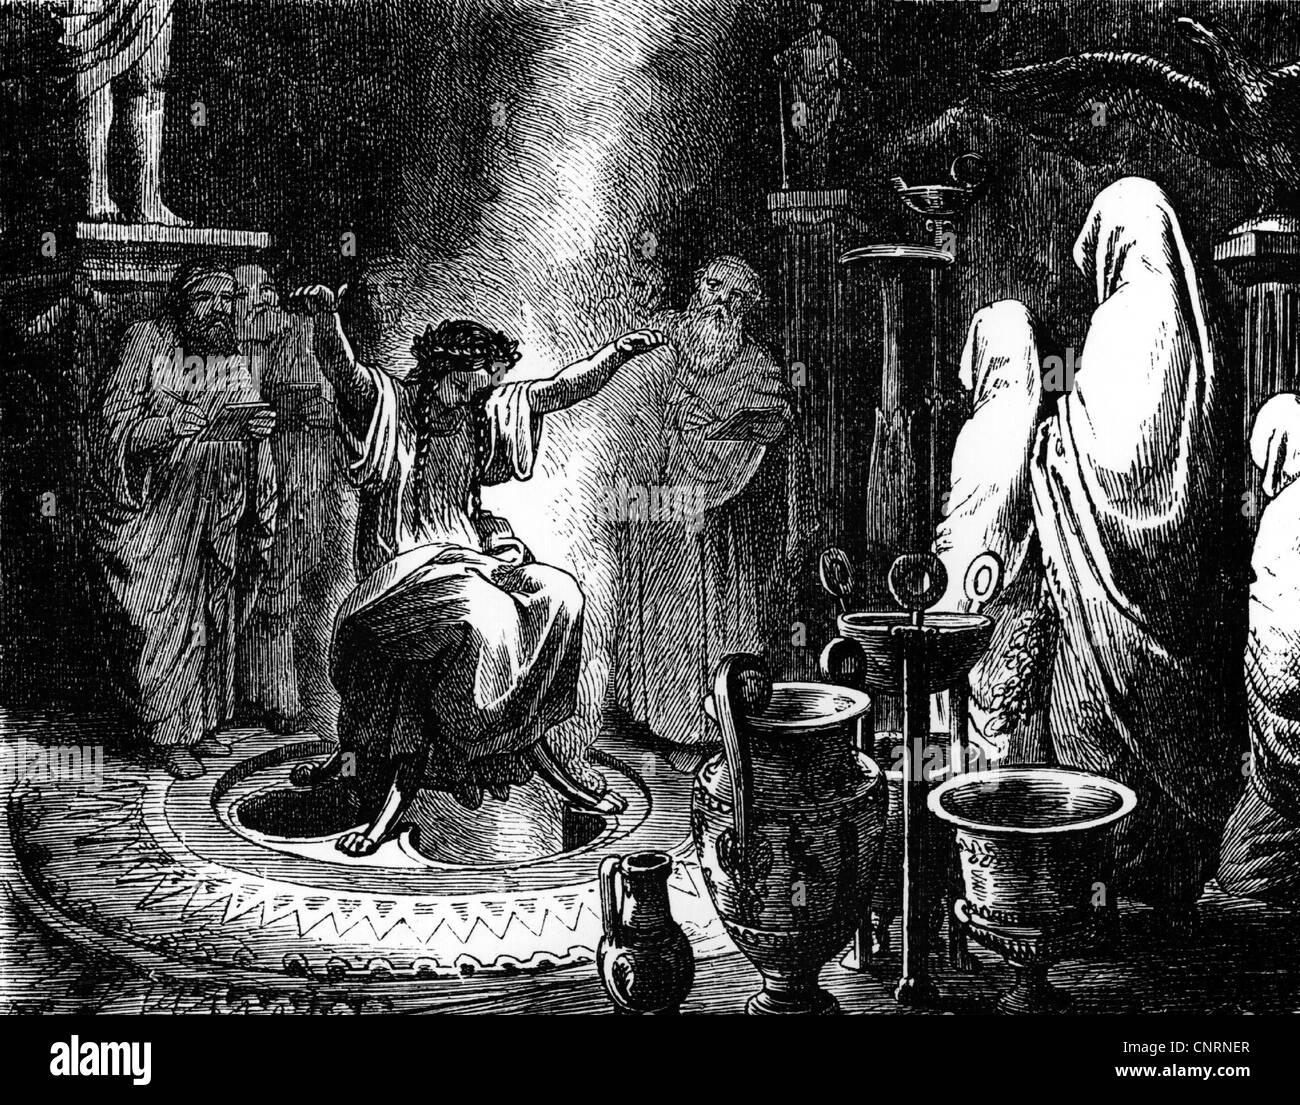 Ancient World, Greece, religion, Delphic Sibyl, priestess Pythia making her prophecies, sitting in a cauldron on - Stock Image